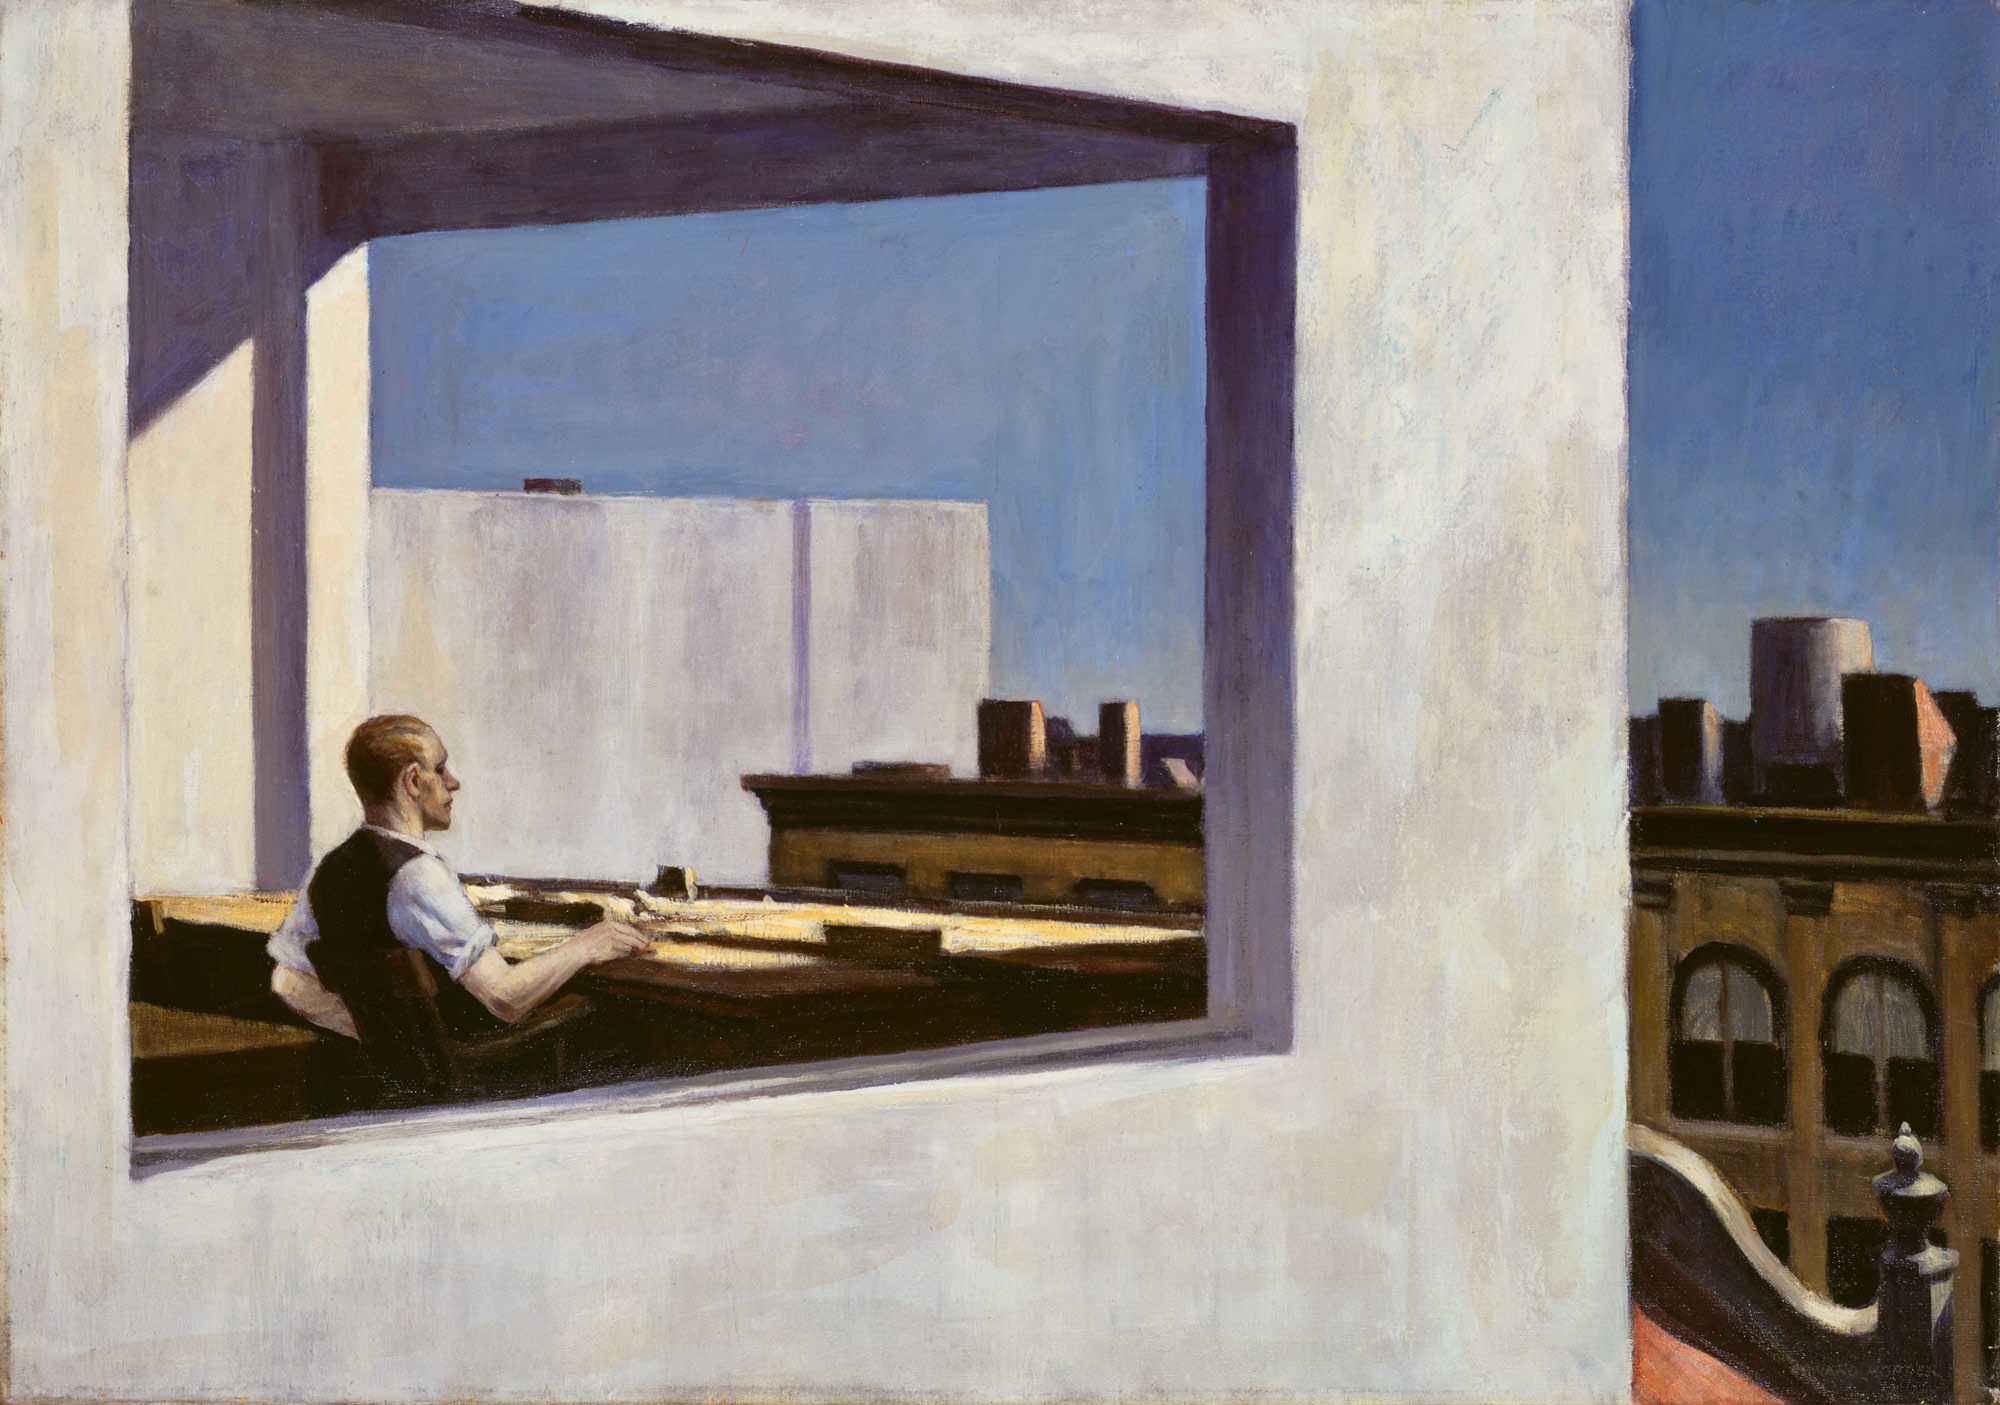 © Edward Hopper. Office in a Small City, 1953.